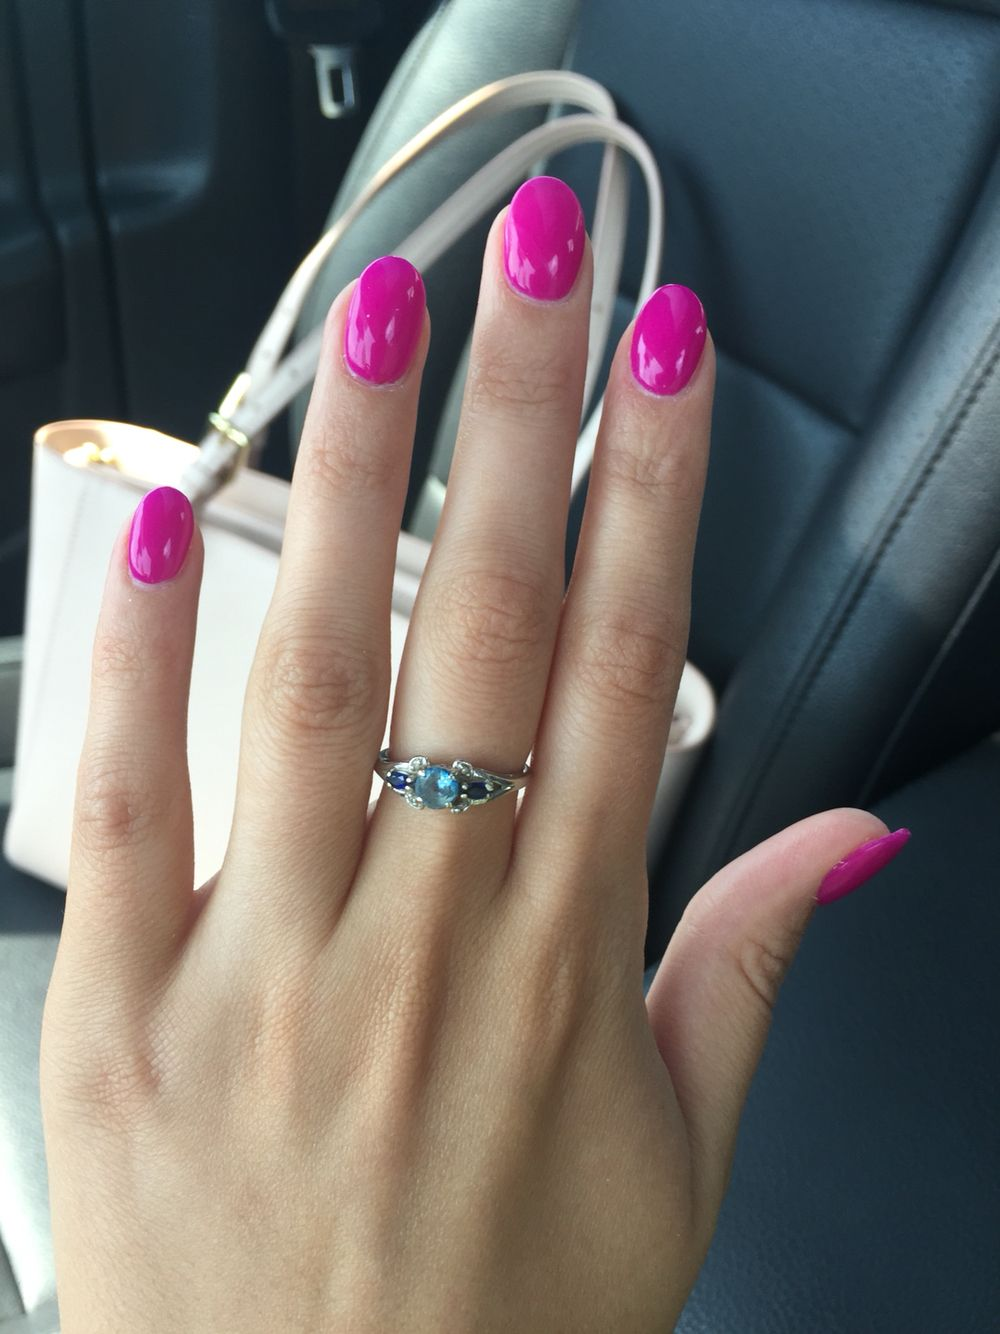 Pin by casey smith on Nails in 2019 | Pink acrylic nails ...